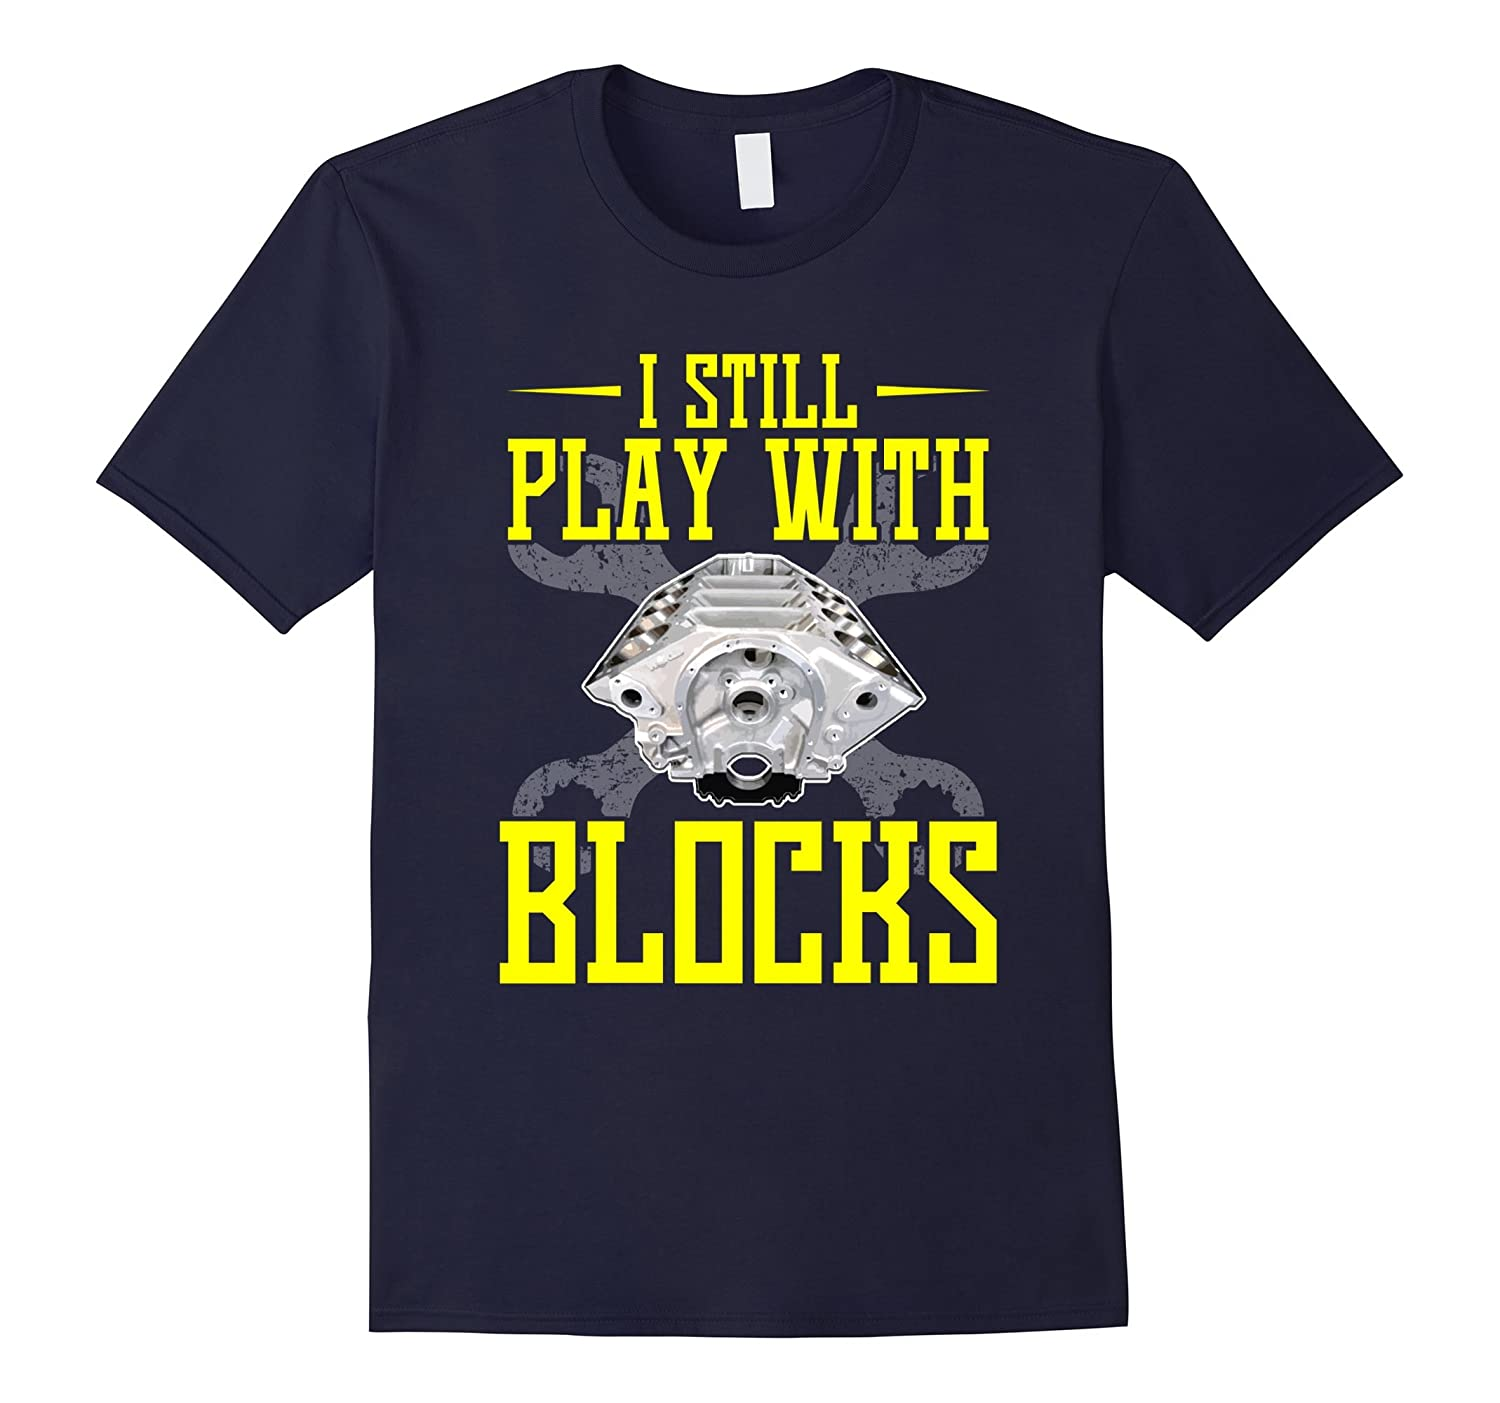 FUNNY I STILL PLAY WITH BLOCKS T-SHIRT Auto Mechanic Gift-TD